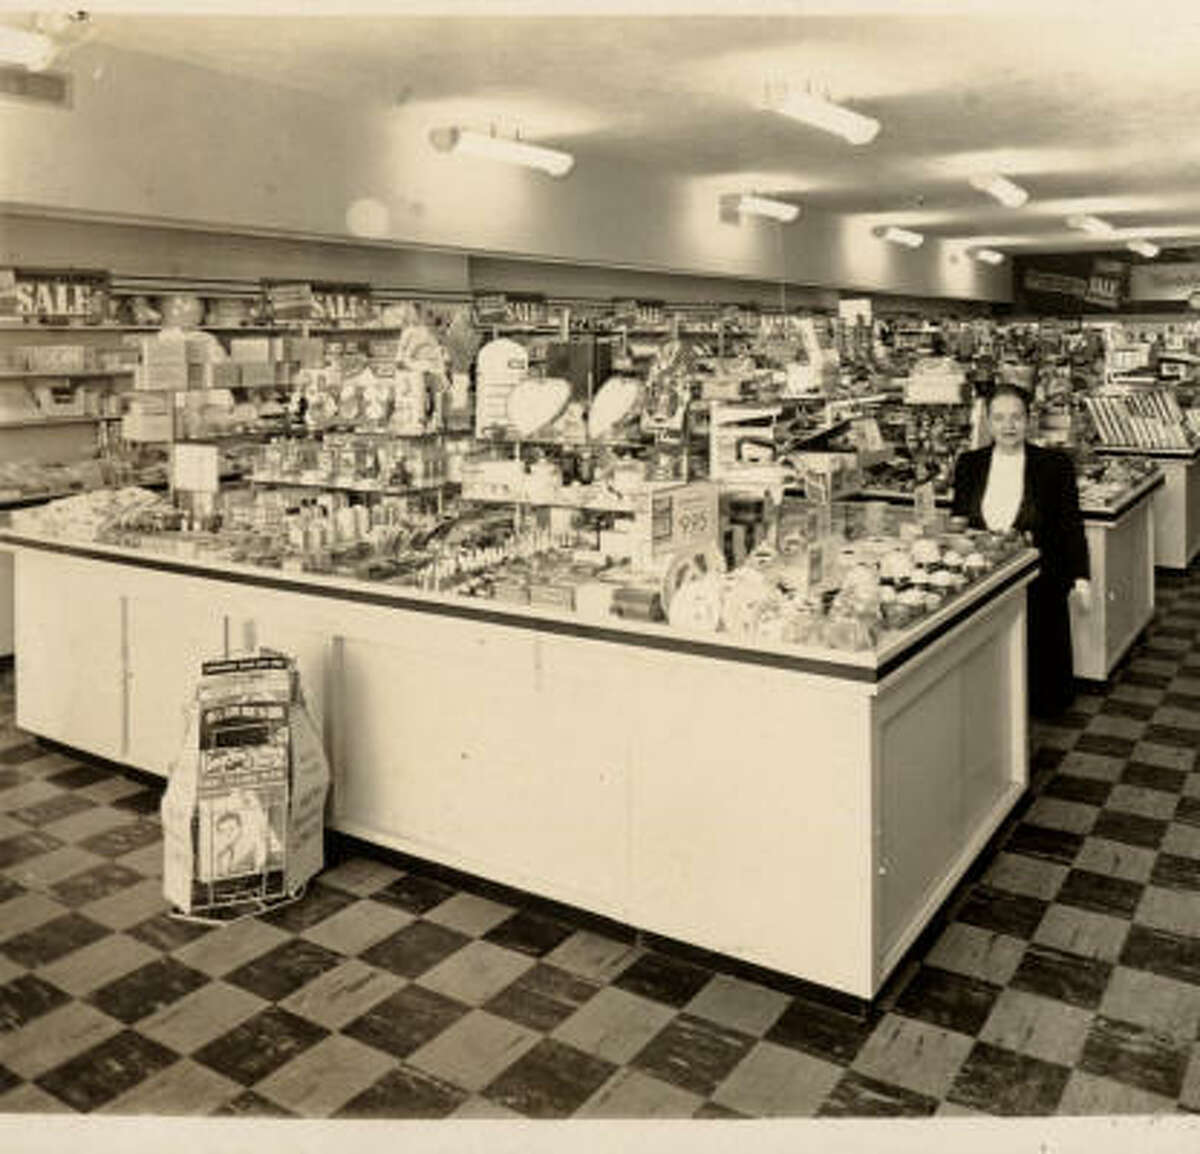 Variety Fair opened on Dec, 9, 1948. Since then, the store has employed some 150 part-time workers.